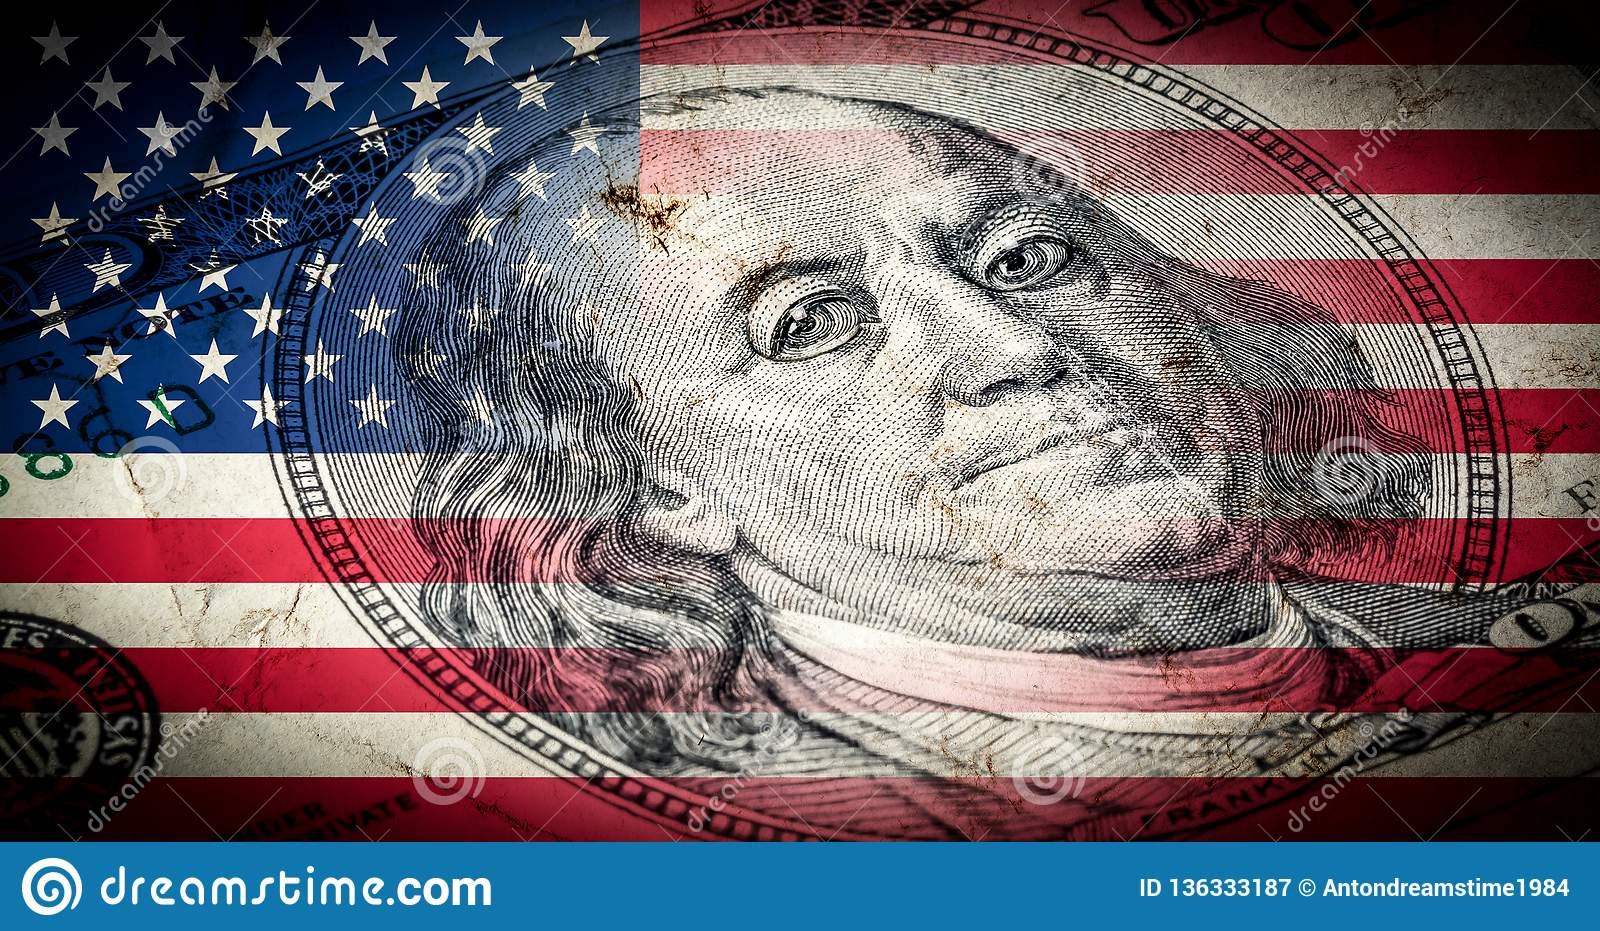 Flag of America with old grunge texture and portrait of Benjamin Franklin on one hundred dollars